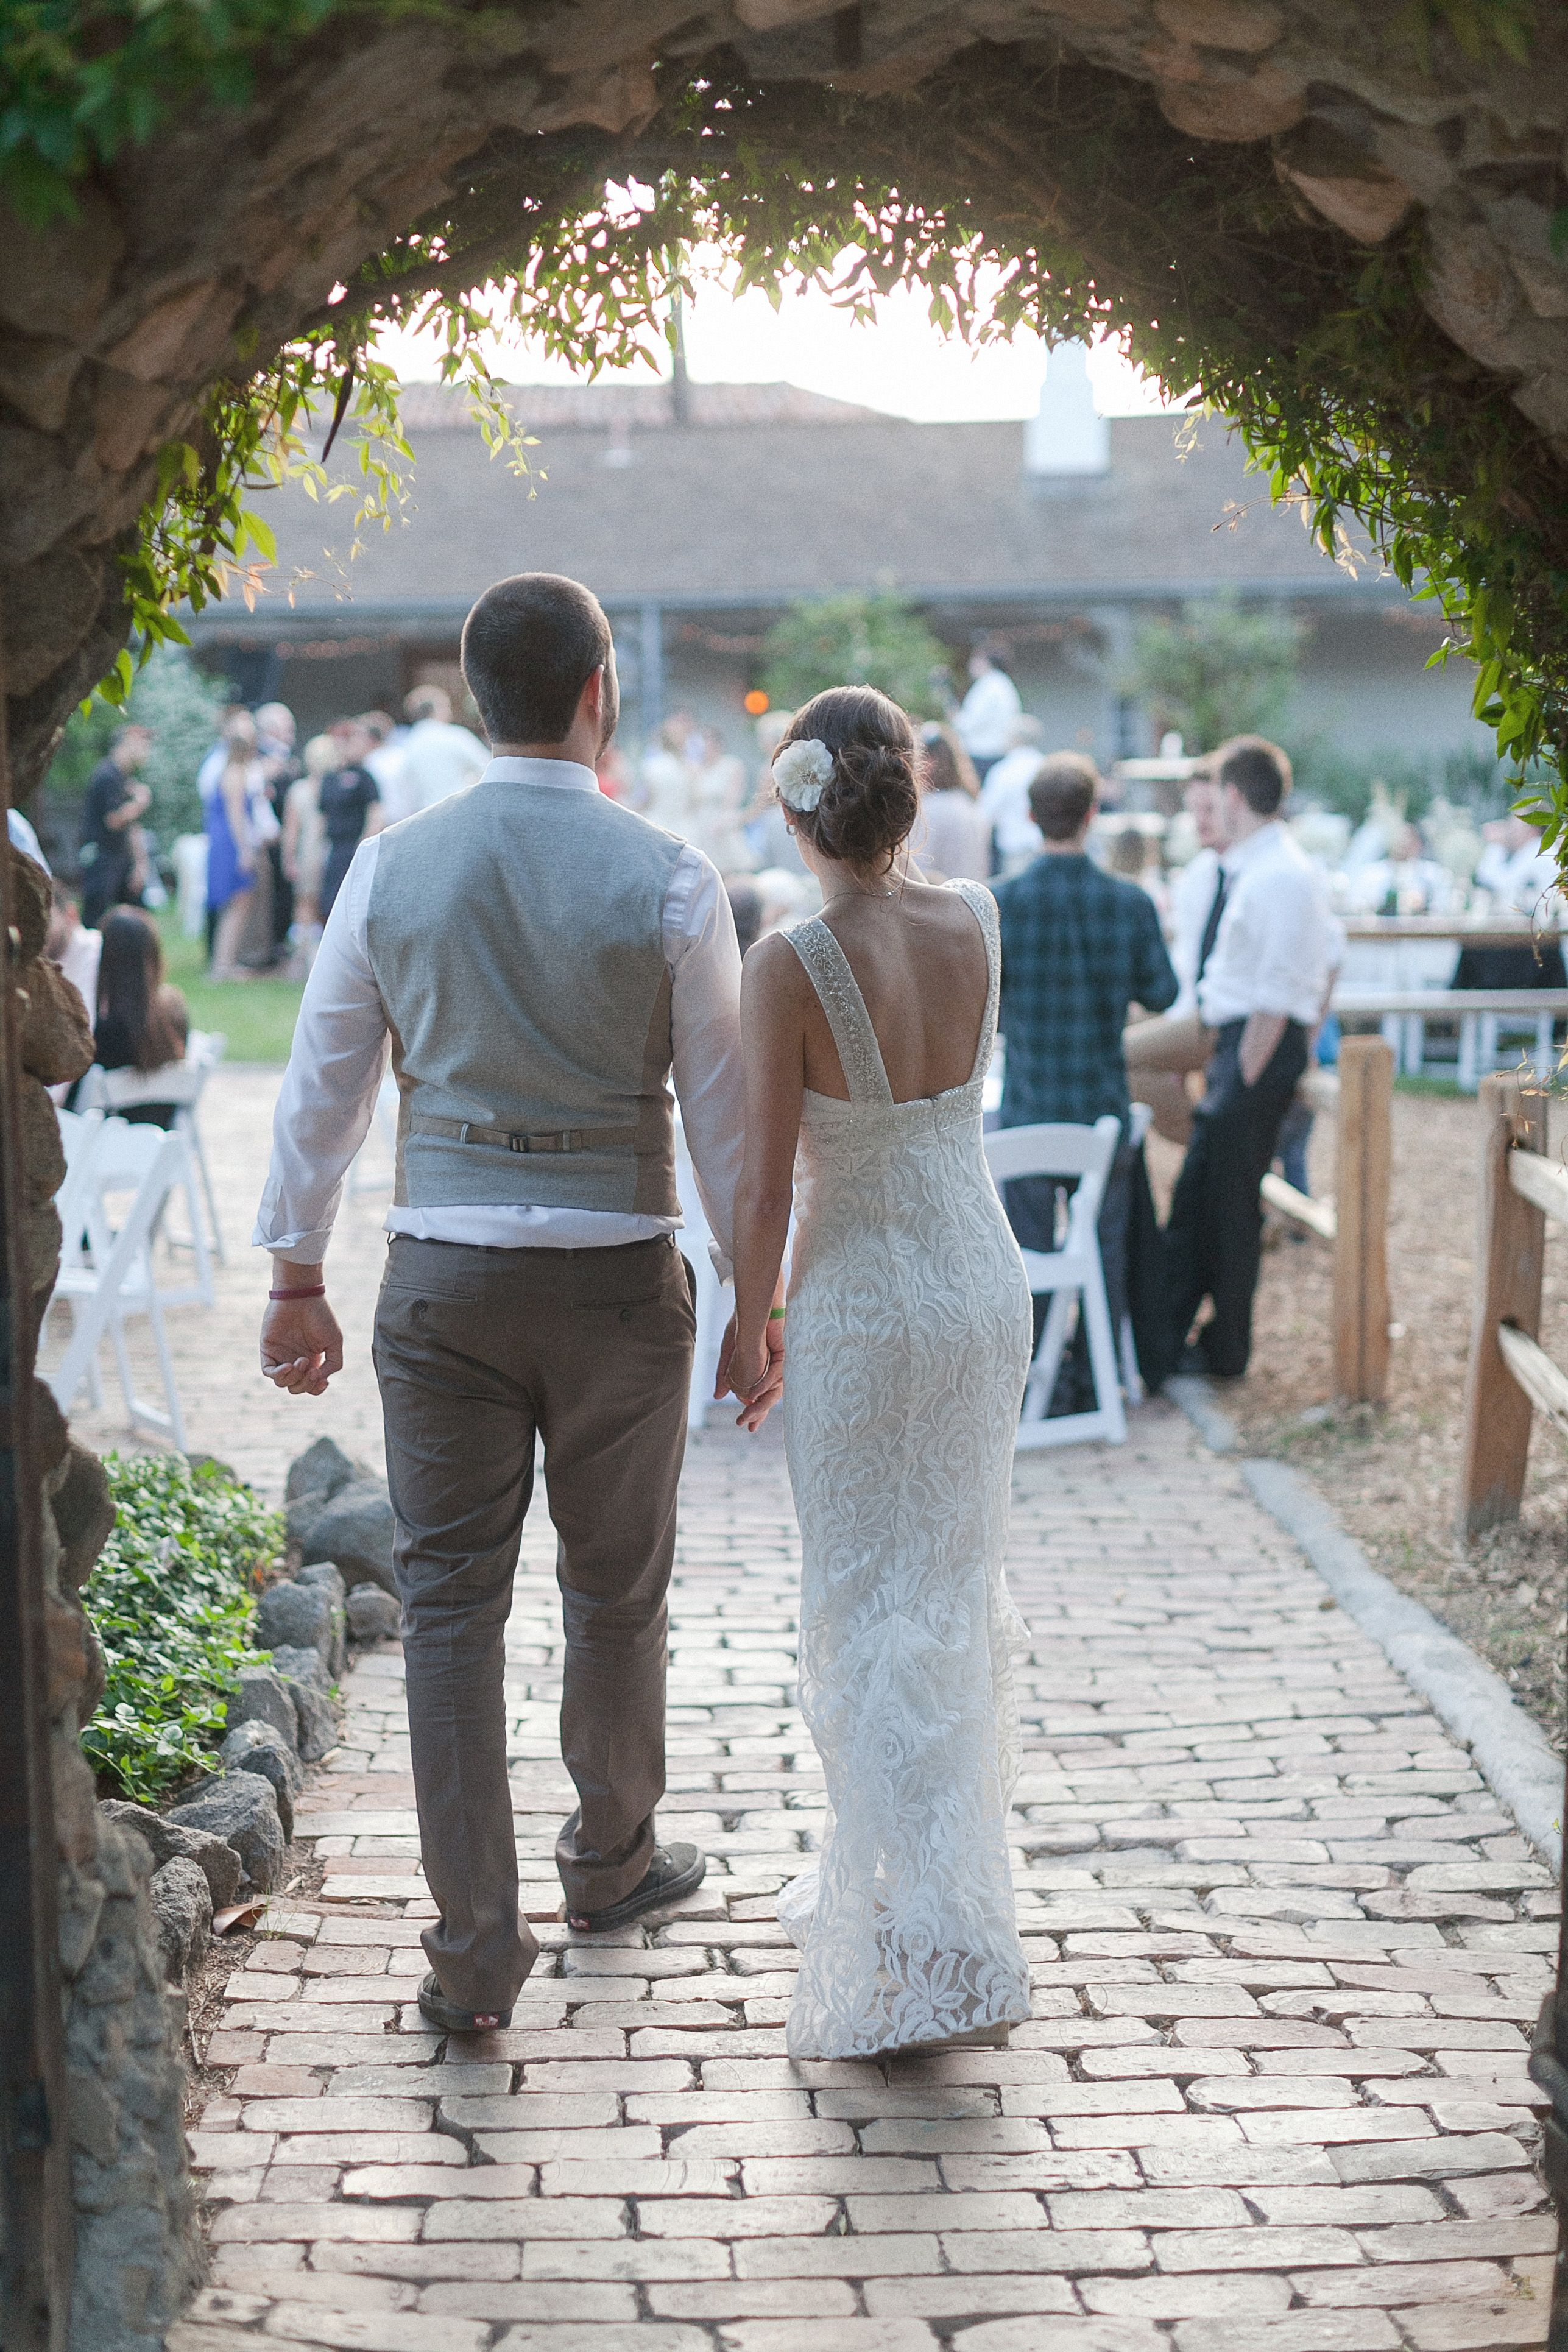 What To Consider When Creating Your Wedding Day Timeline